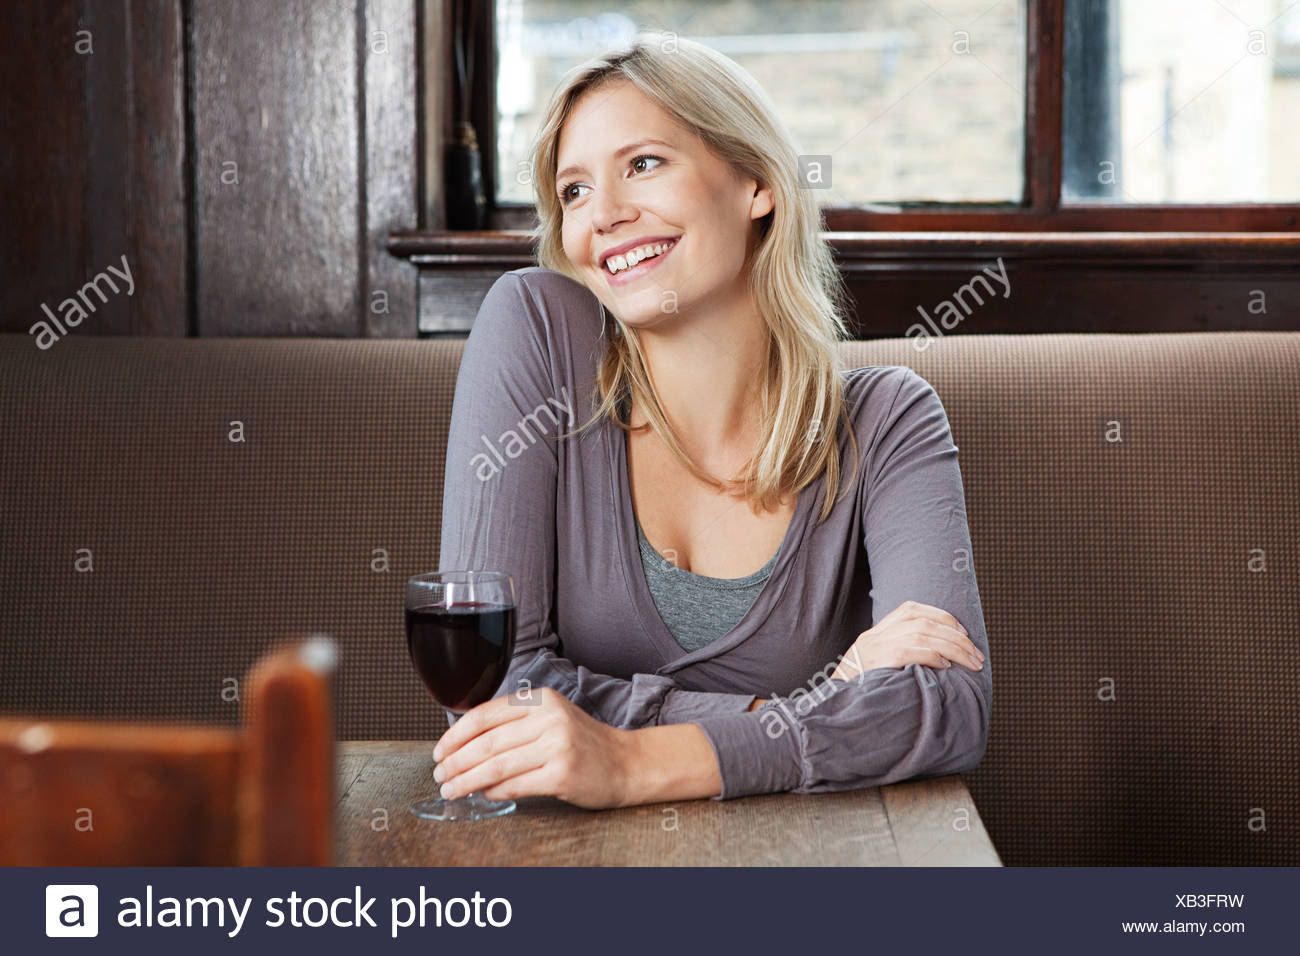 Young woman in bar - Stock Image